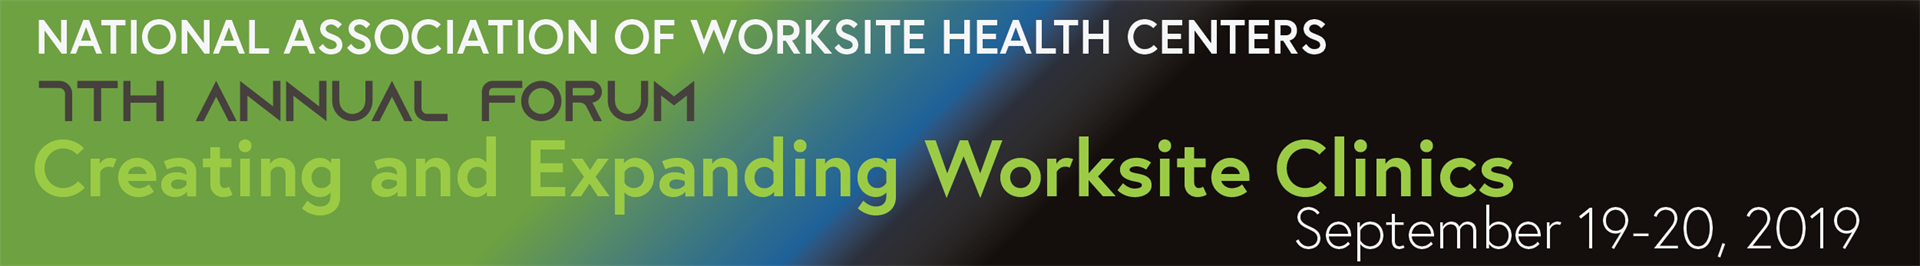 National Association of Worksite Health Centers - Sept  19